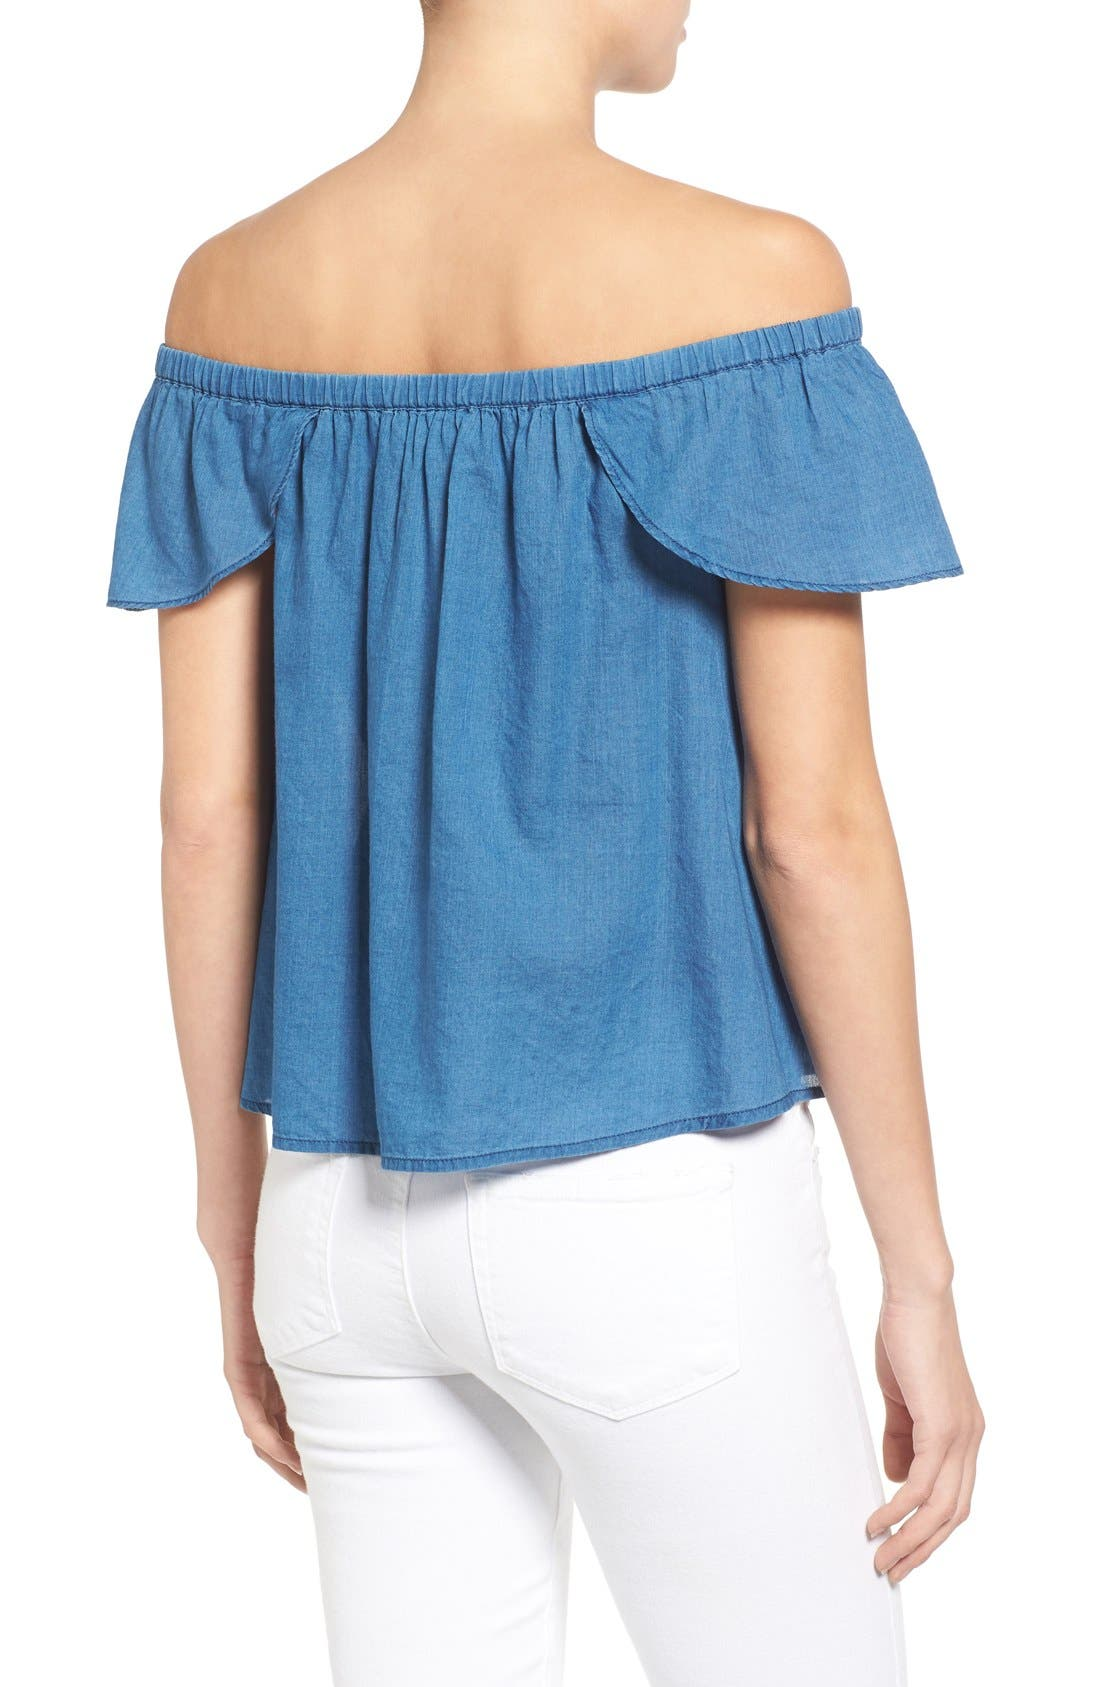 MADEWELL,                             Off the Shoulder Cotton Top,                             Alternate thumbnail 3, color,                             400